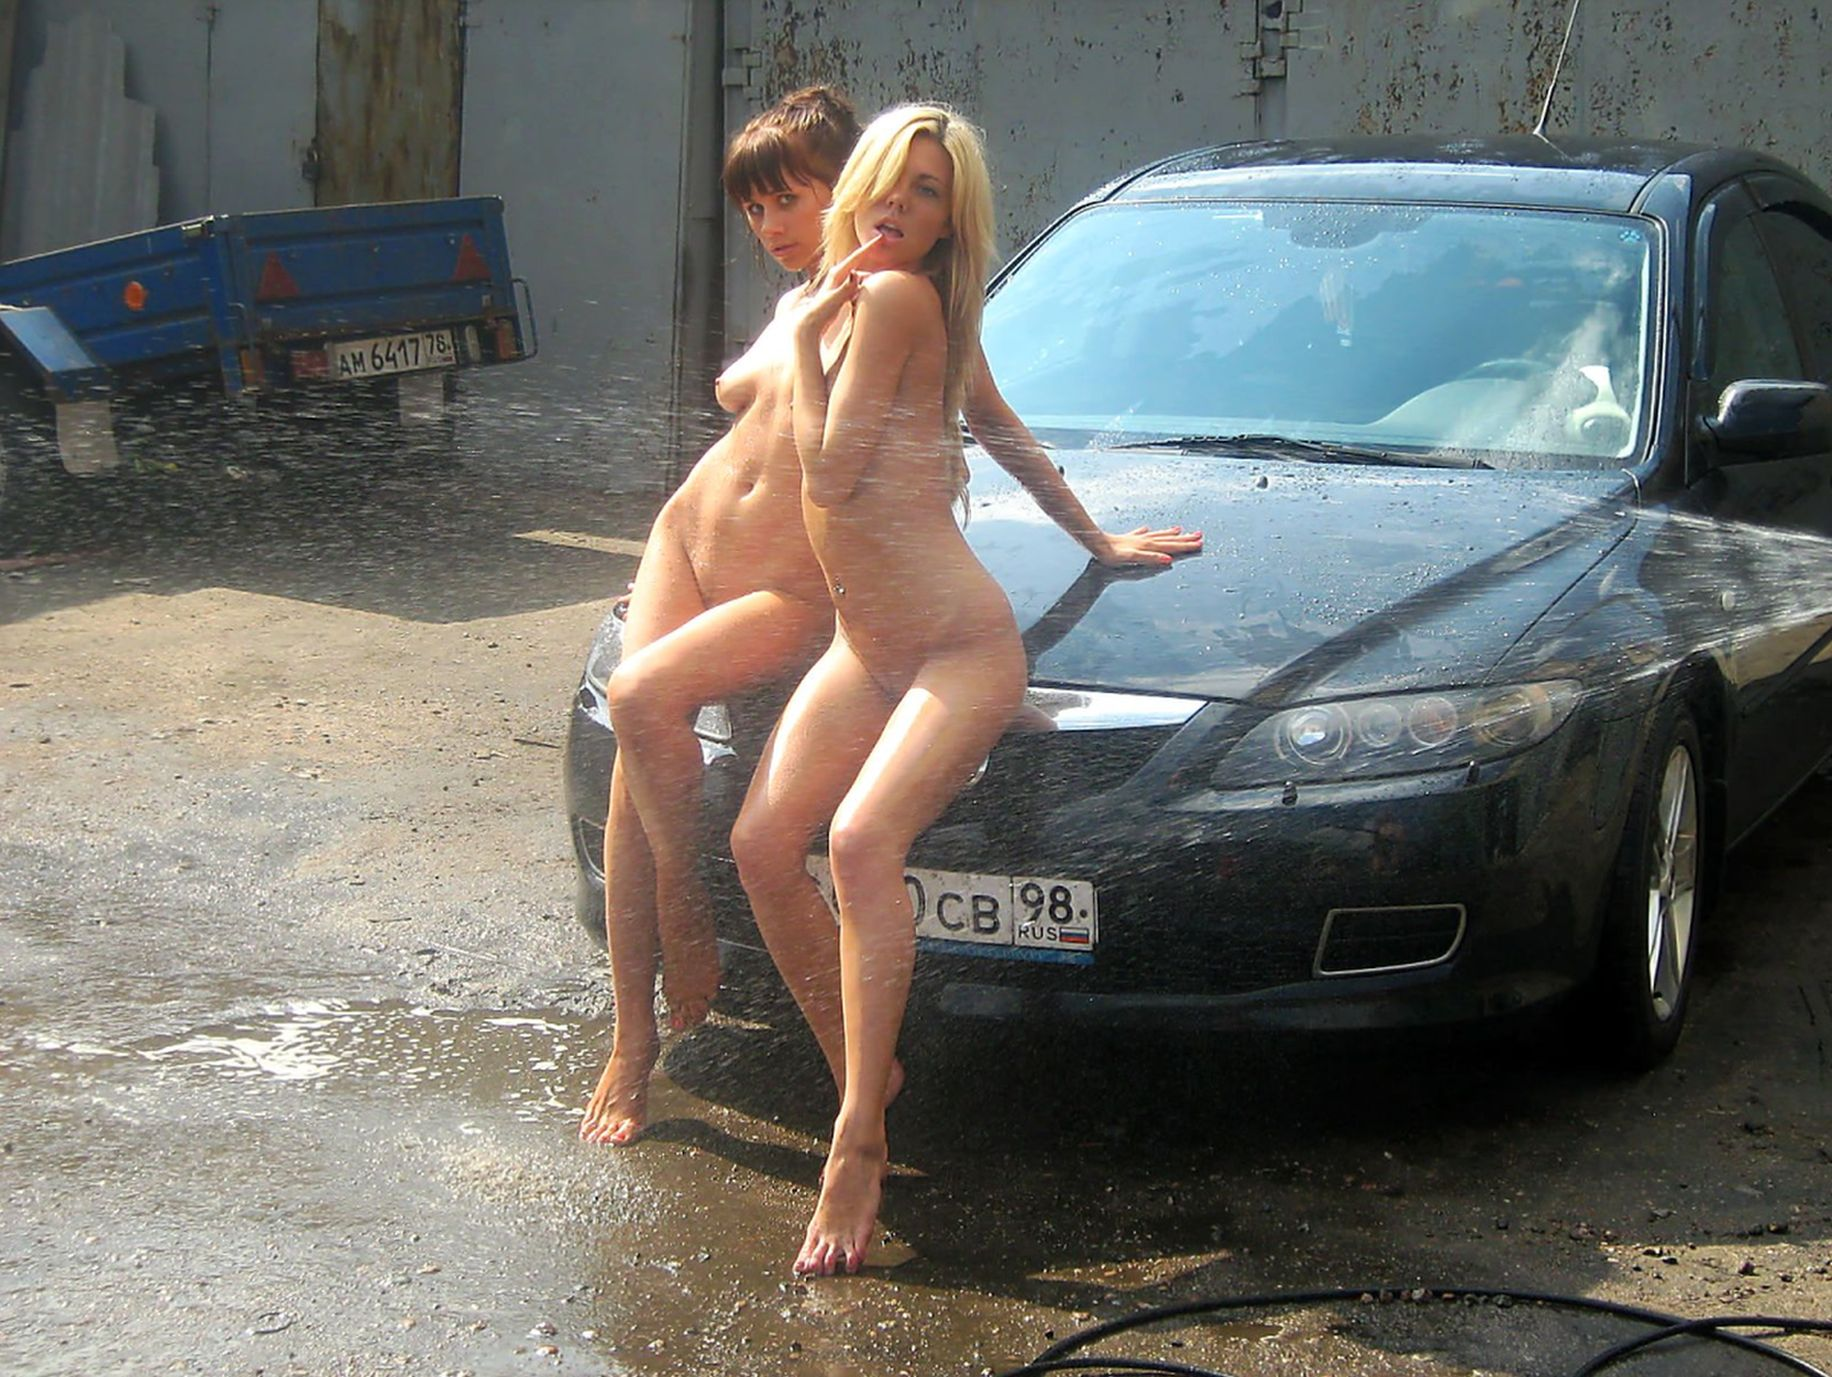 Speaking, Public naked car wash girls